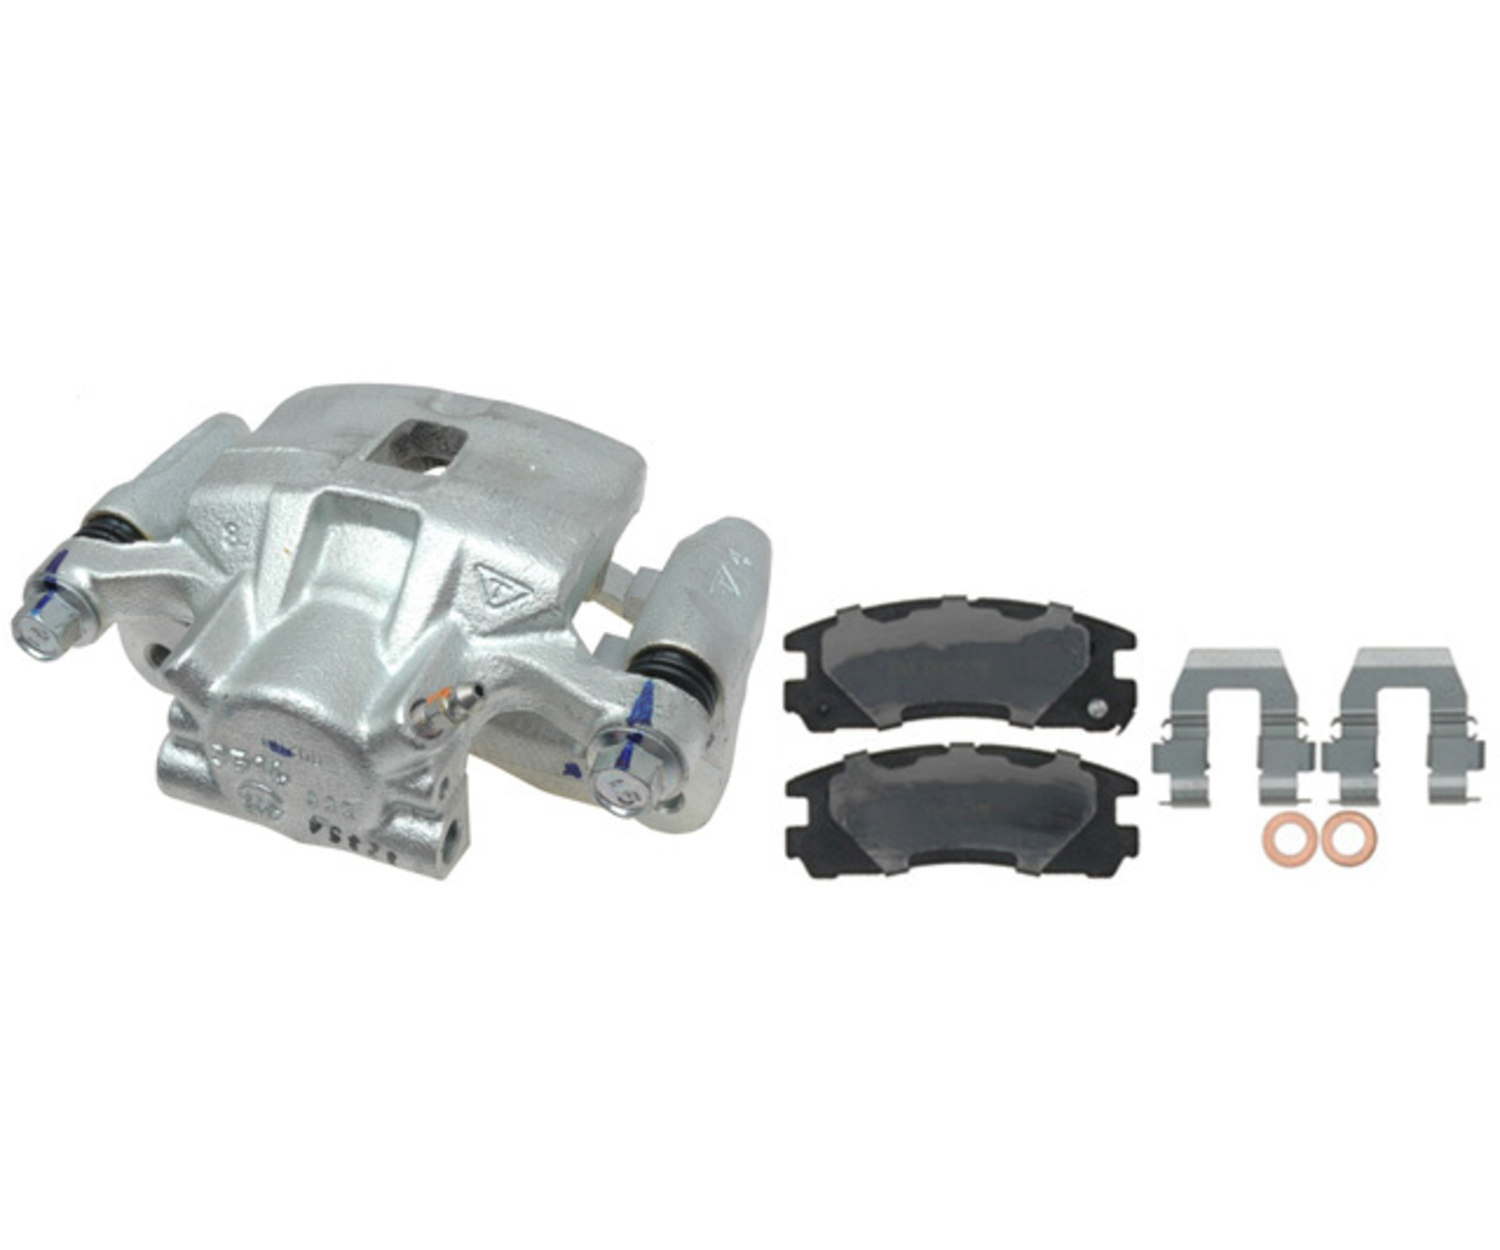 RAYBESTOS - R-Line; Loaded Caliper, Remanufactured; Includes Bracket (Rear Left) - RAY RC12154